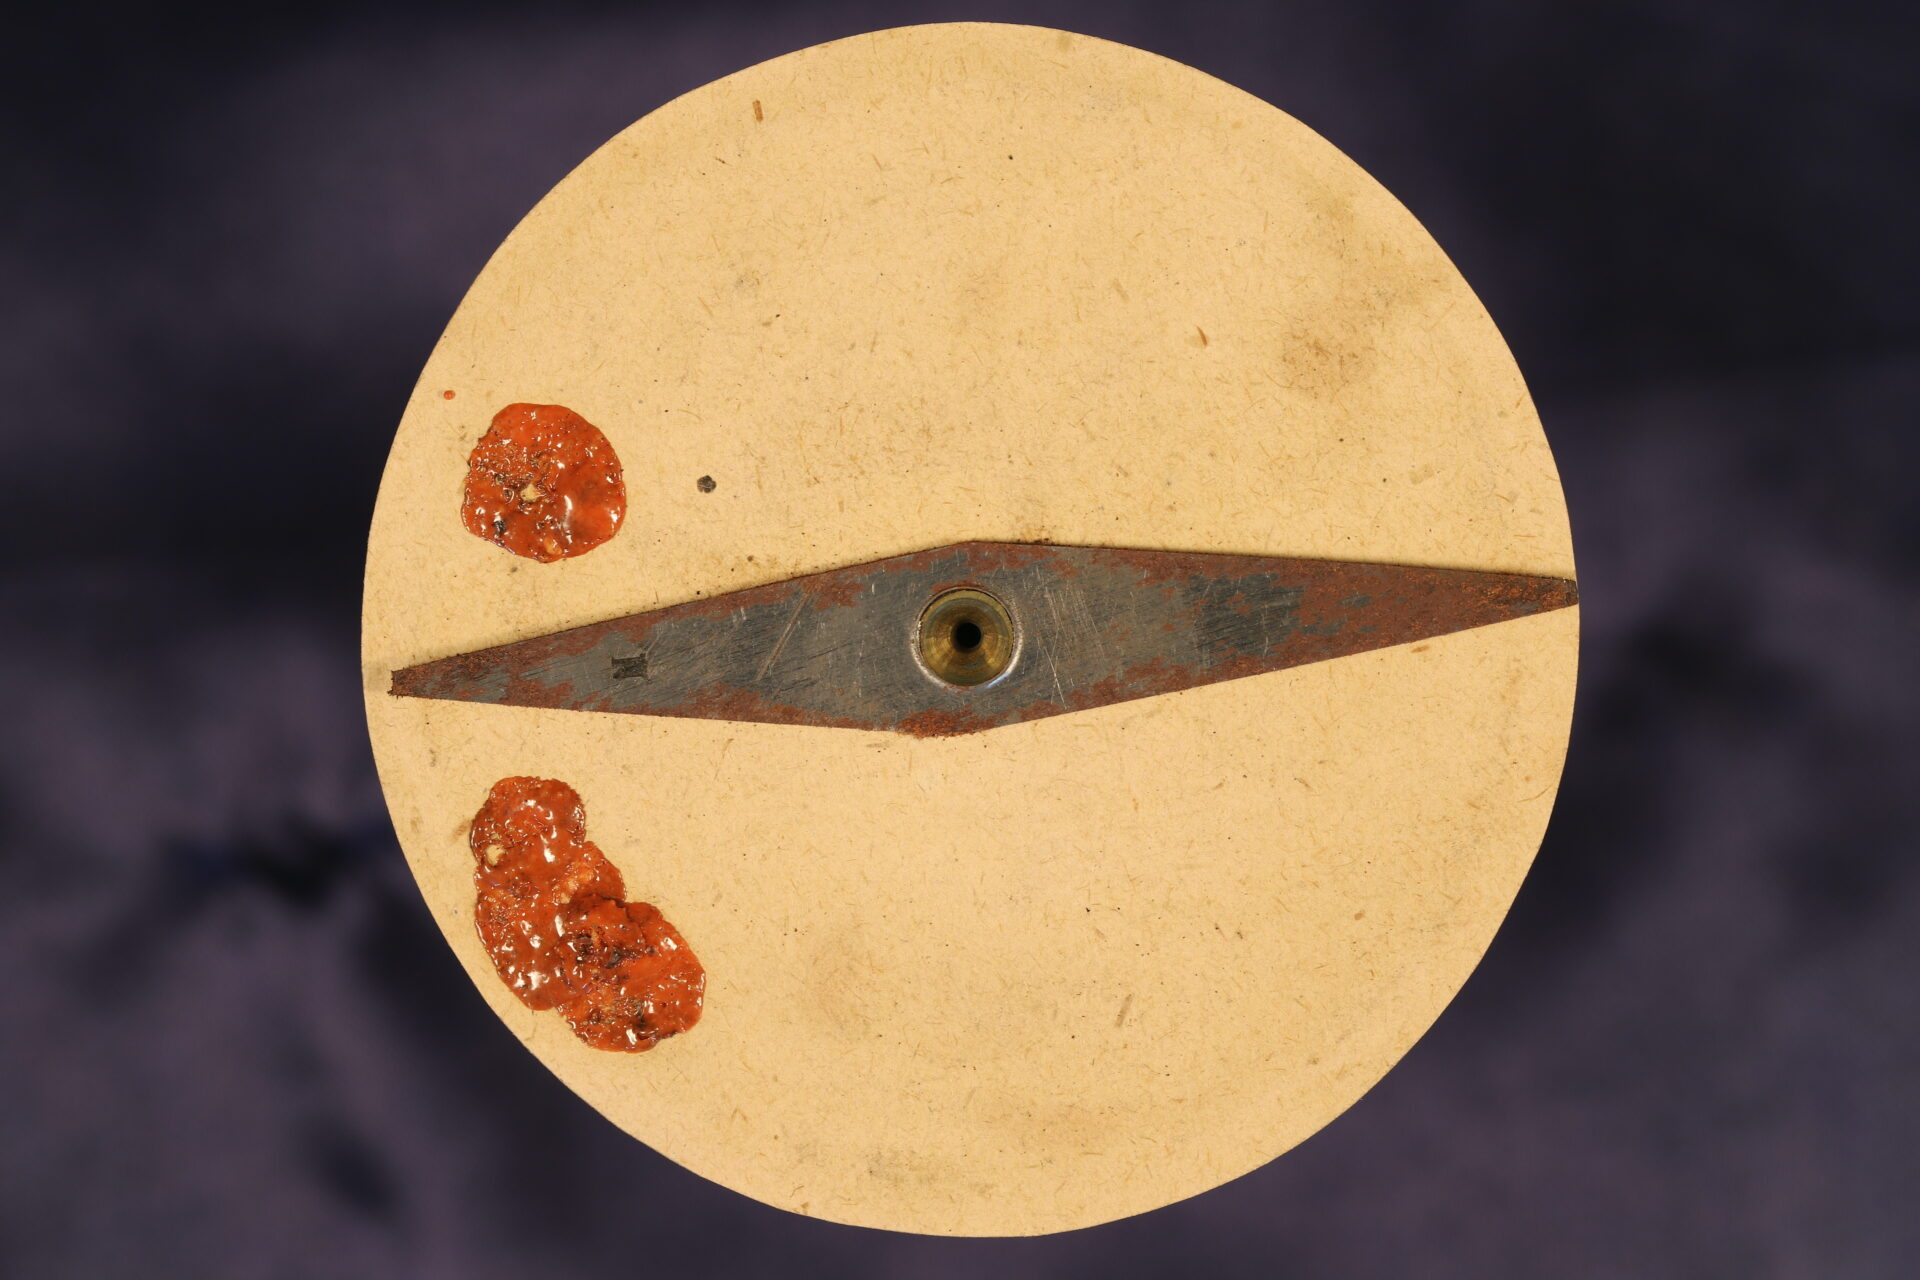 Image of underside of card for Explorers Singers Patent Compass c1870